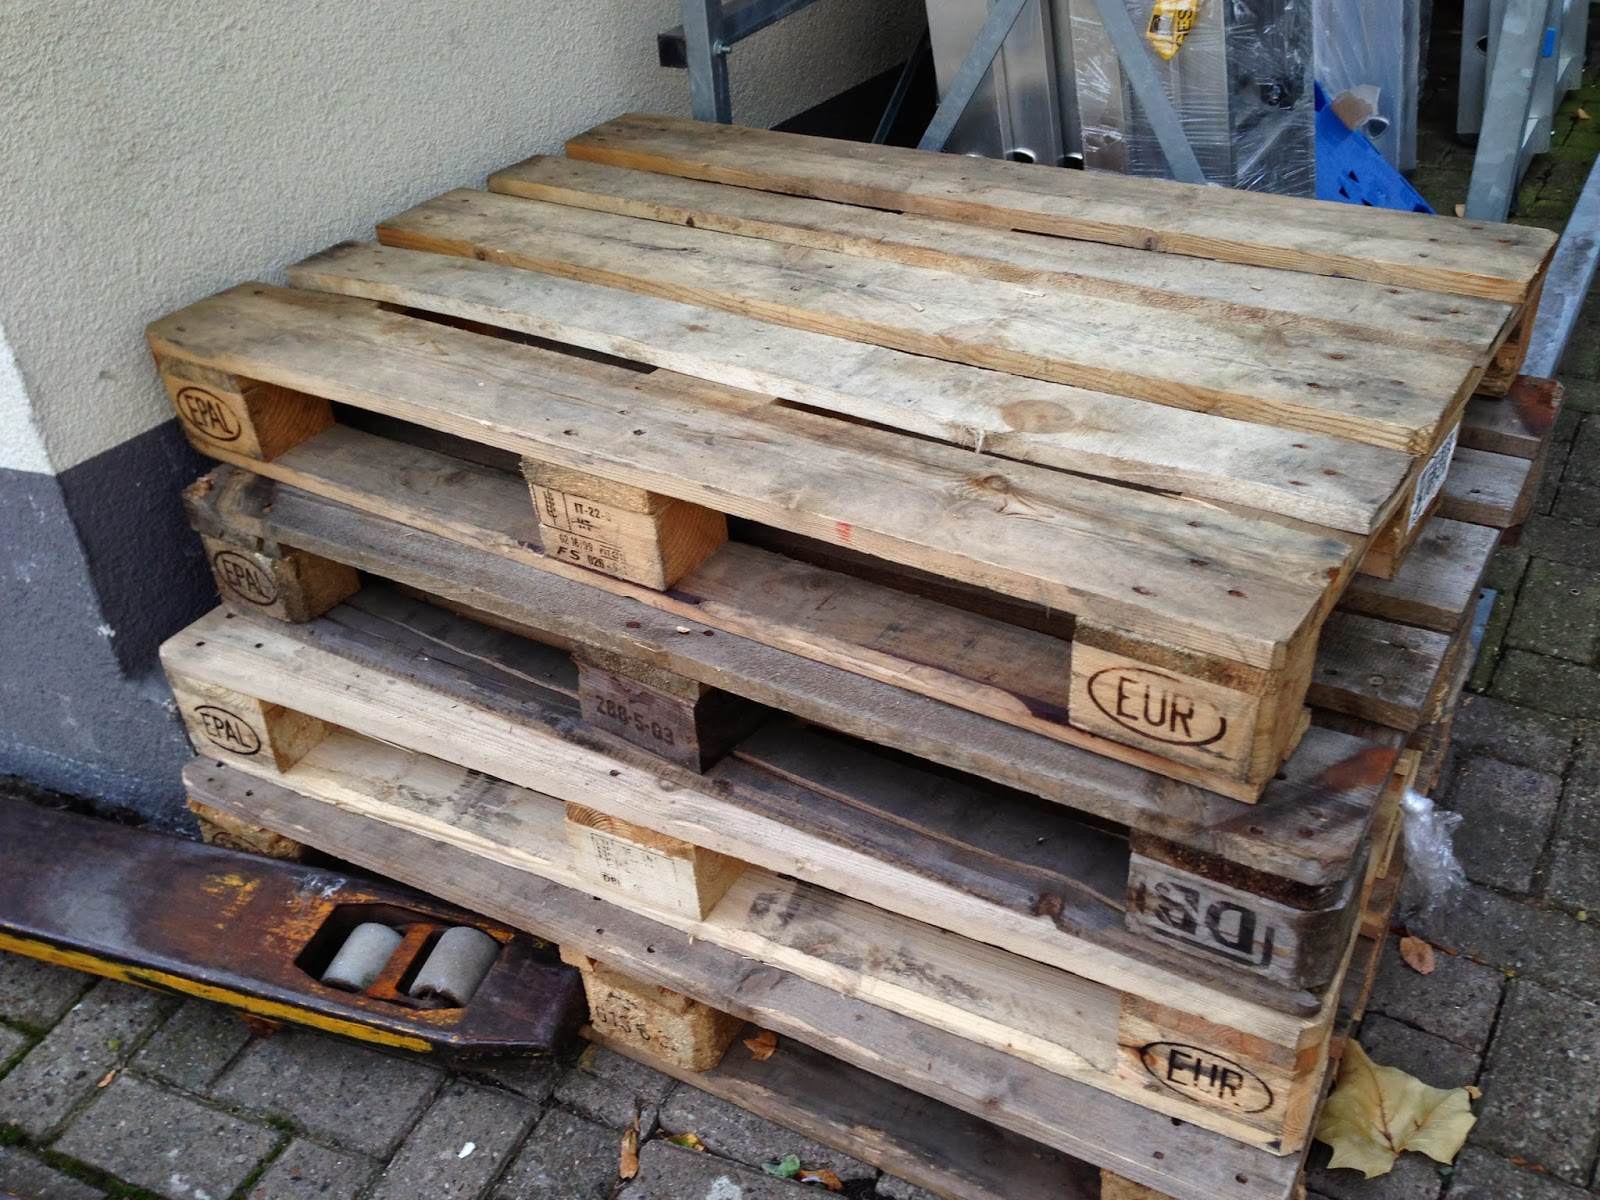 Furniture Concept - Der Blog rund ums Holz: All about .... Möbel ...